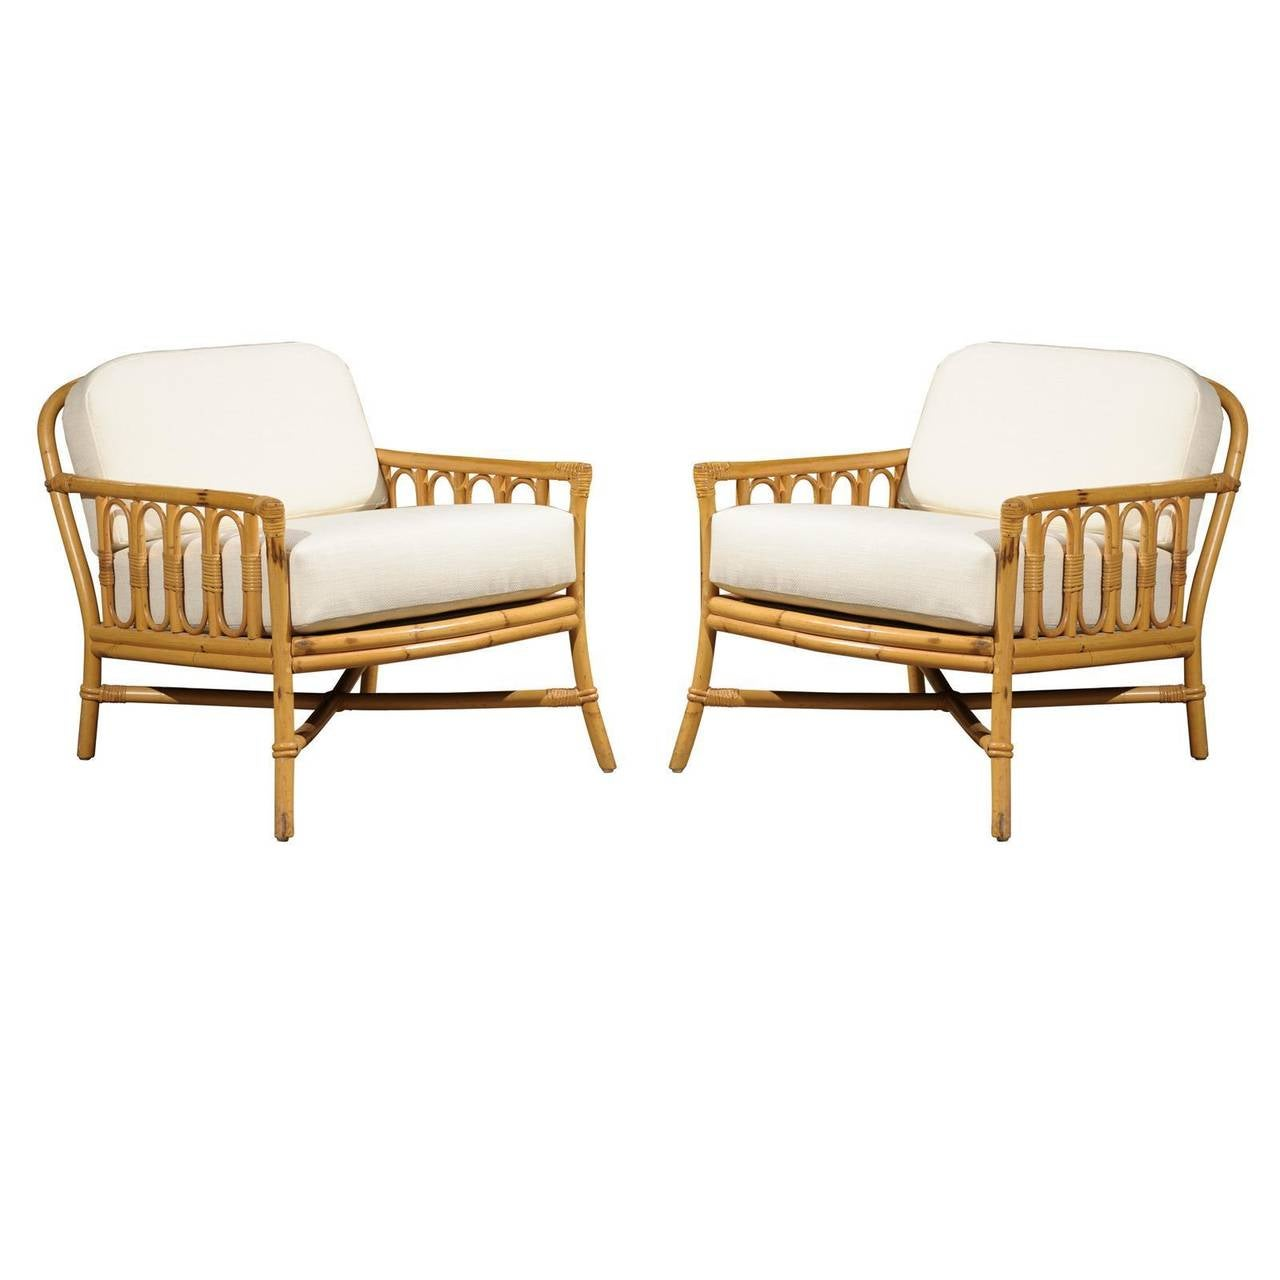 decorative pair of vintage rattan lounge chairs by ficks reed at